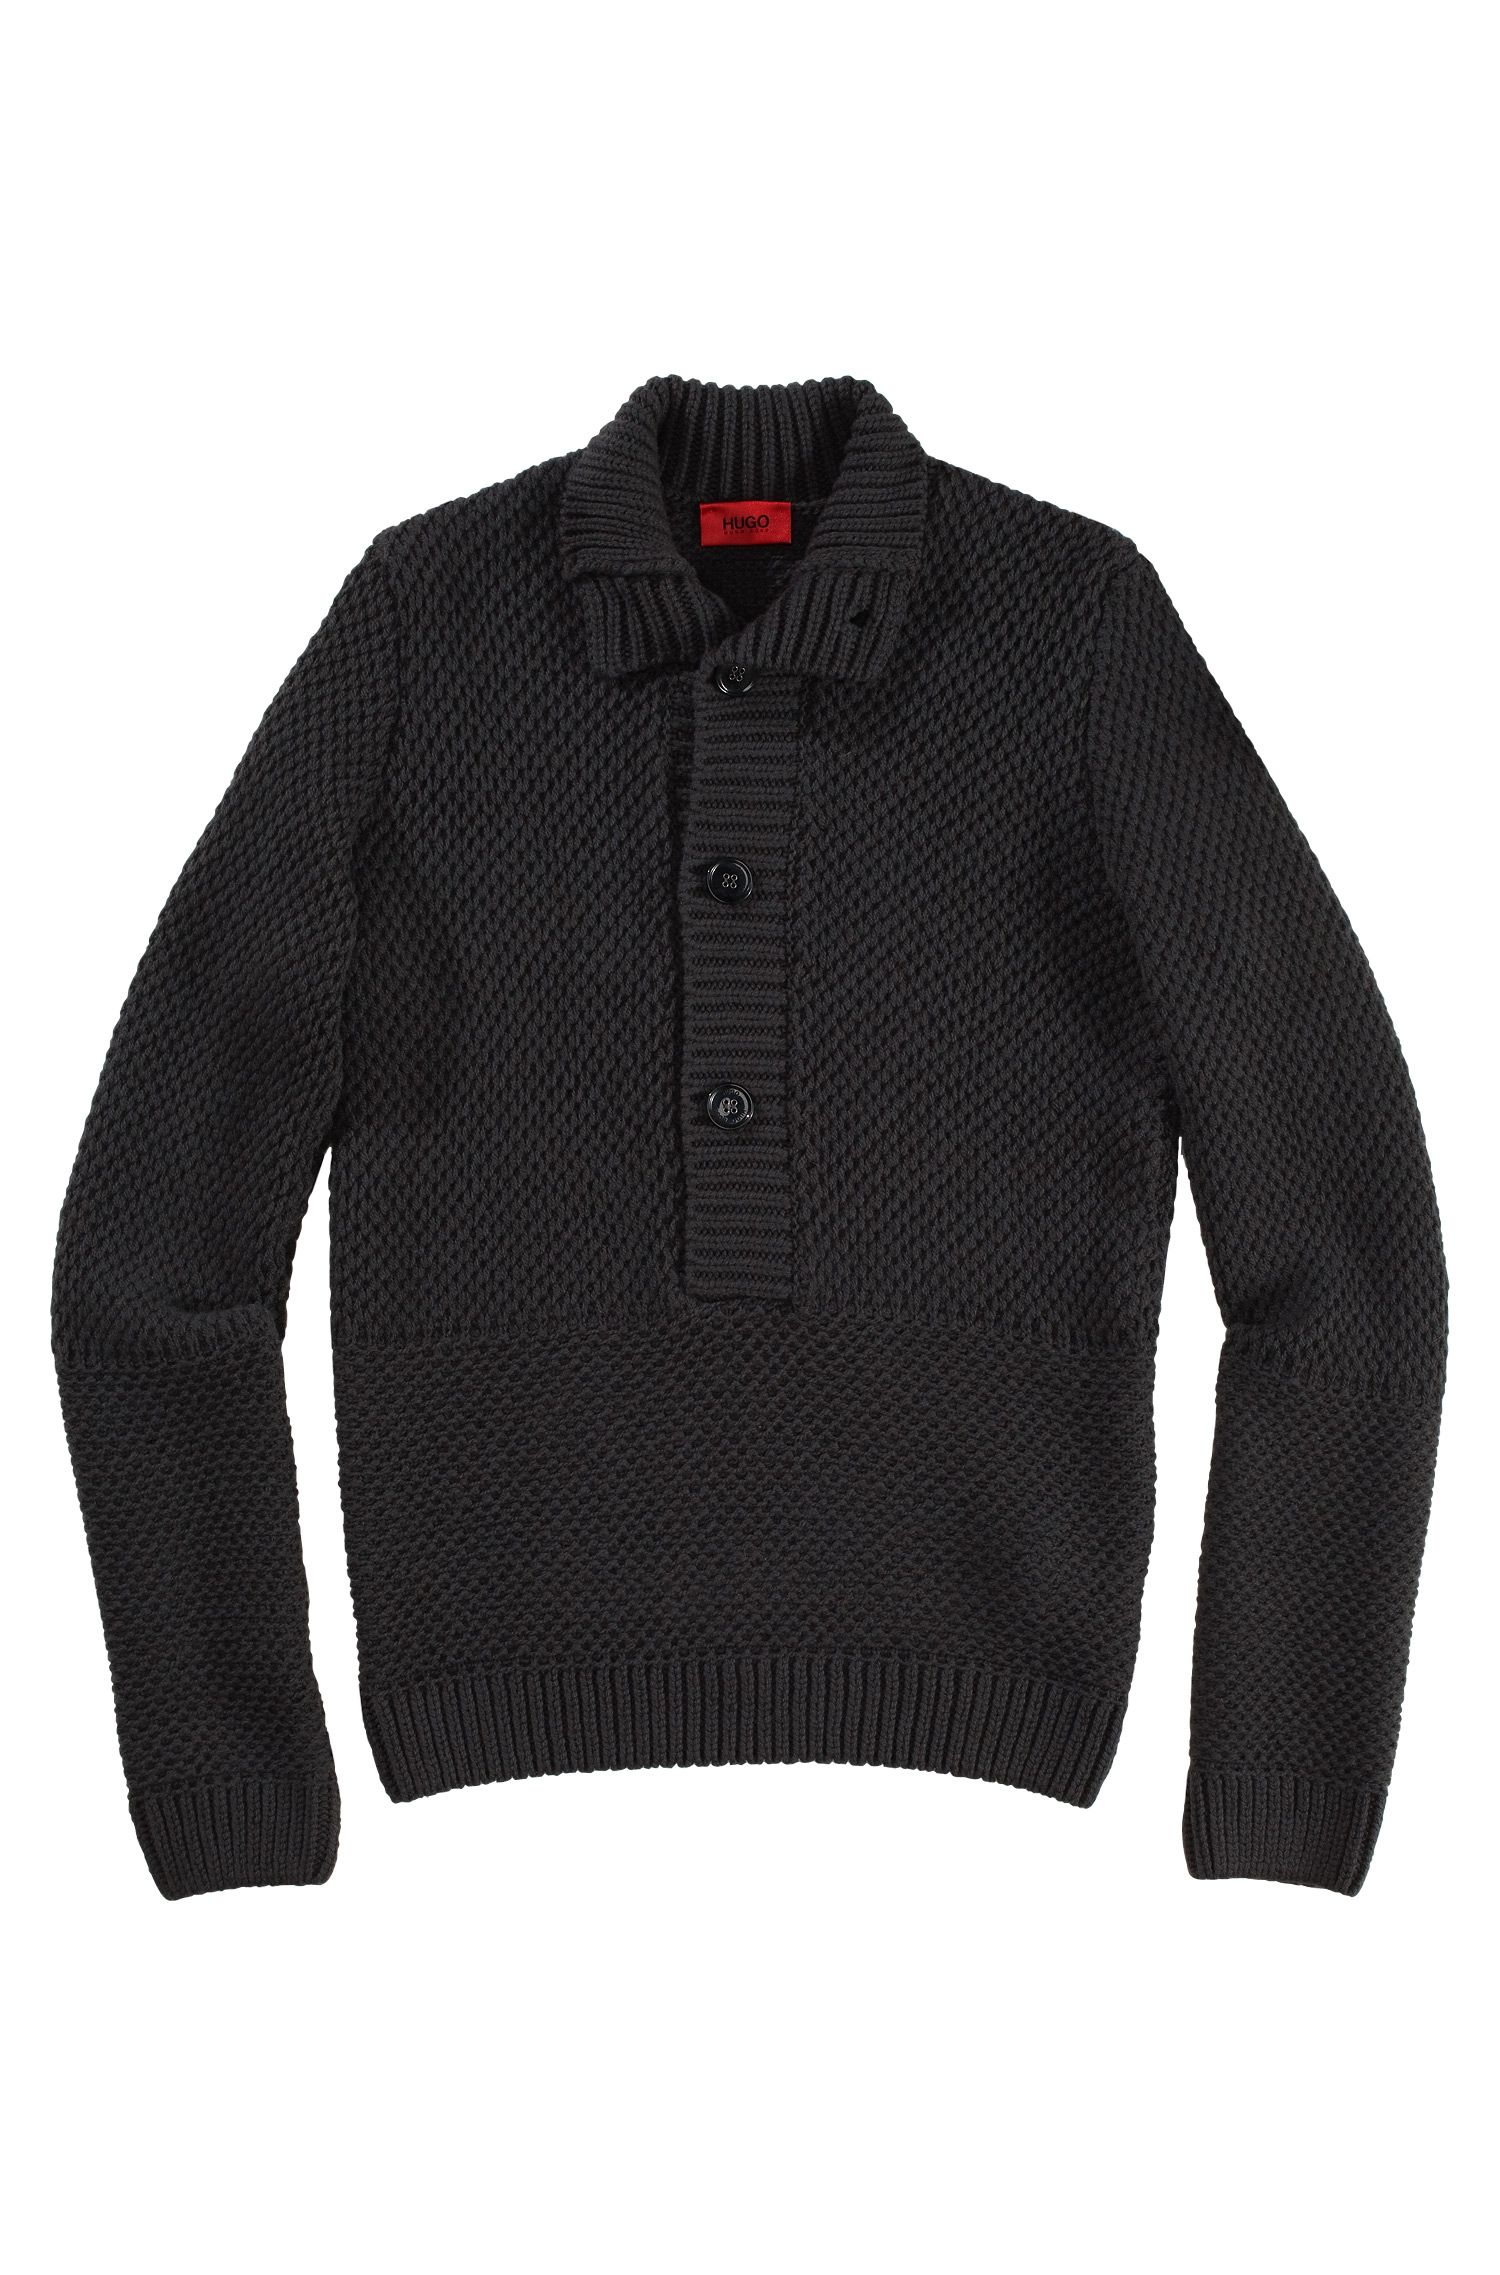 Pull-over en pure laine vierge, Syver